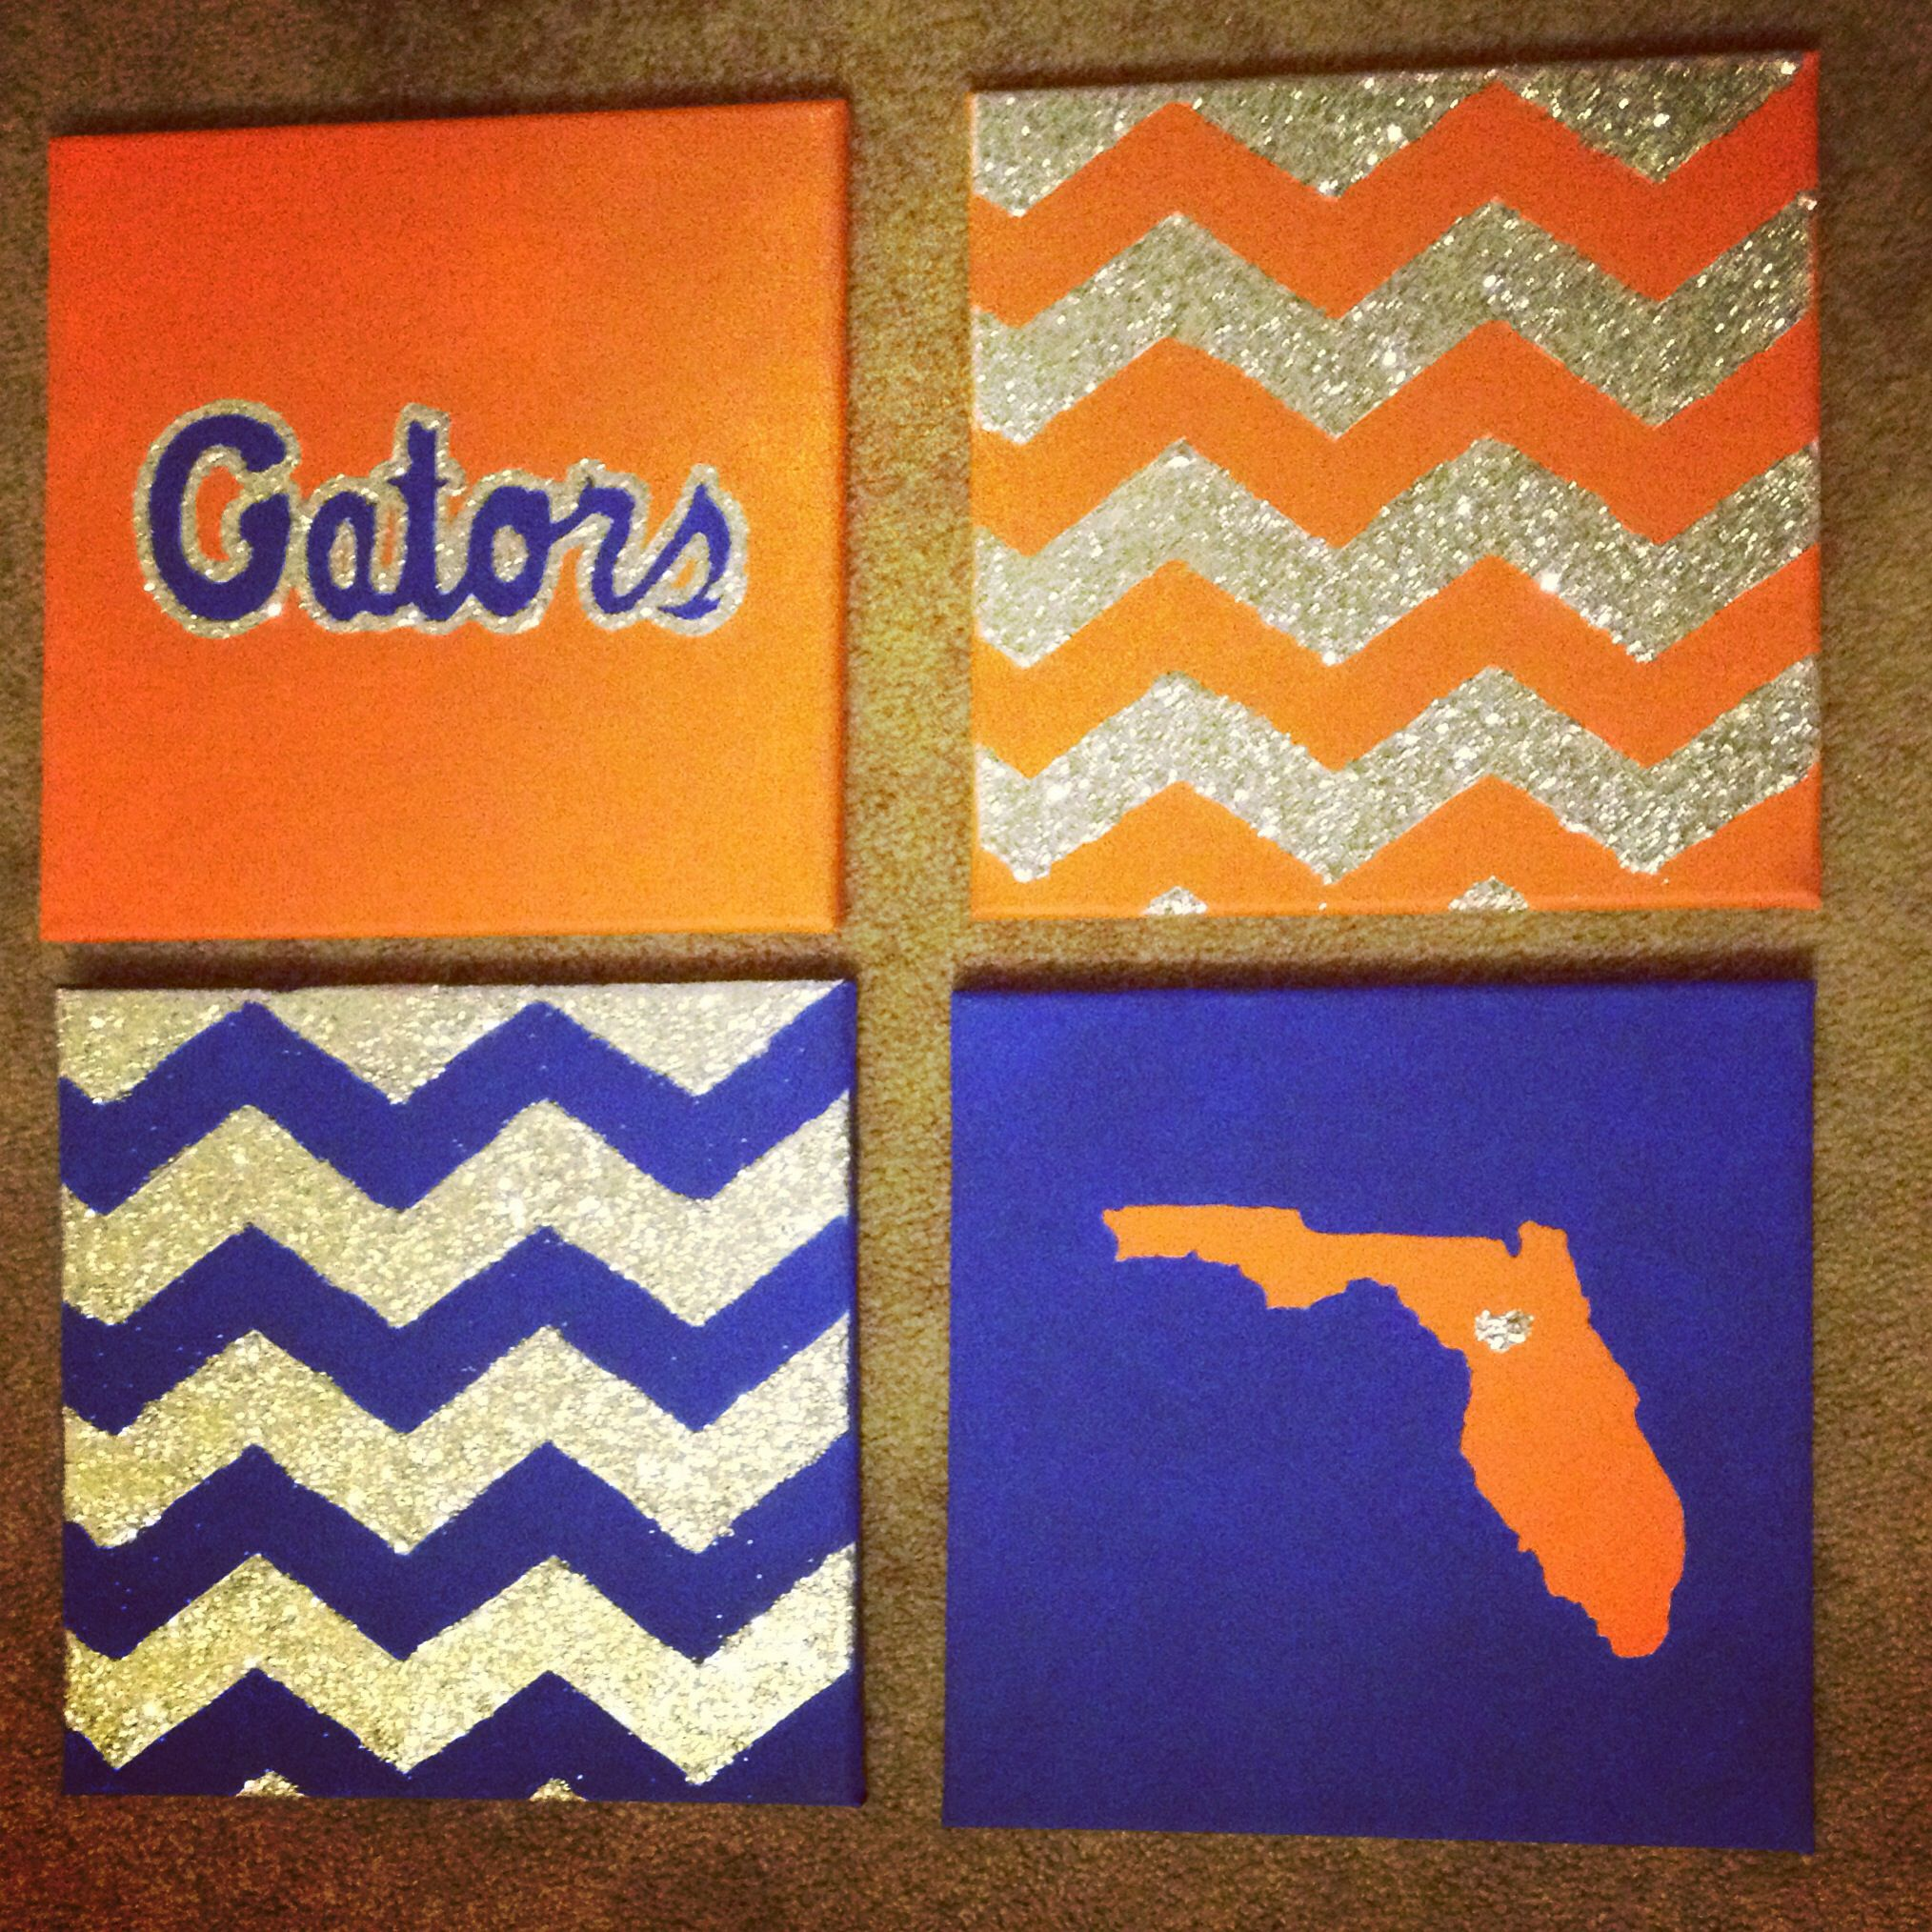 Gators canvas art | Crafts! | Pinterest | Canvases, Craft and ...